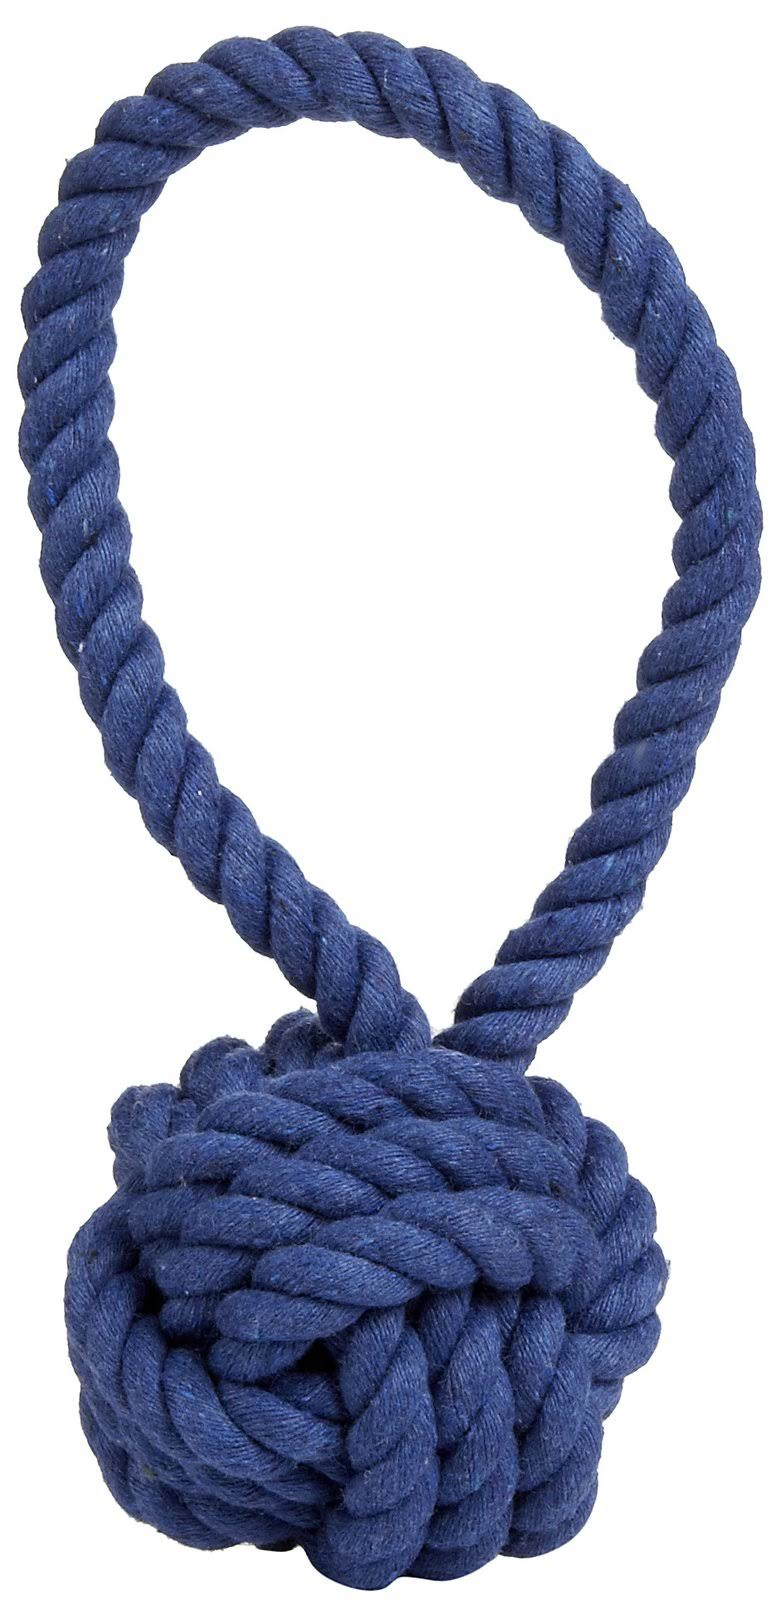 Harry Barker Cotton Rope Tug and Toss Toy - Dark Blue - Medium